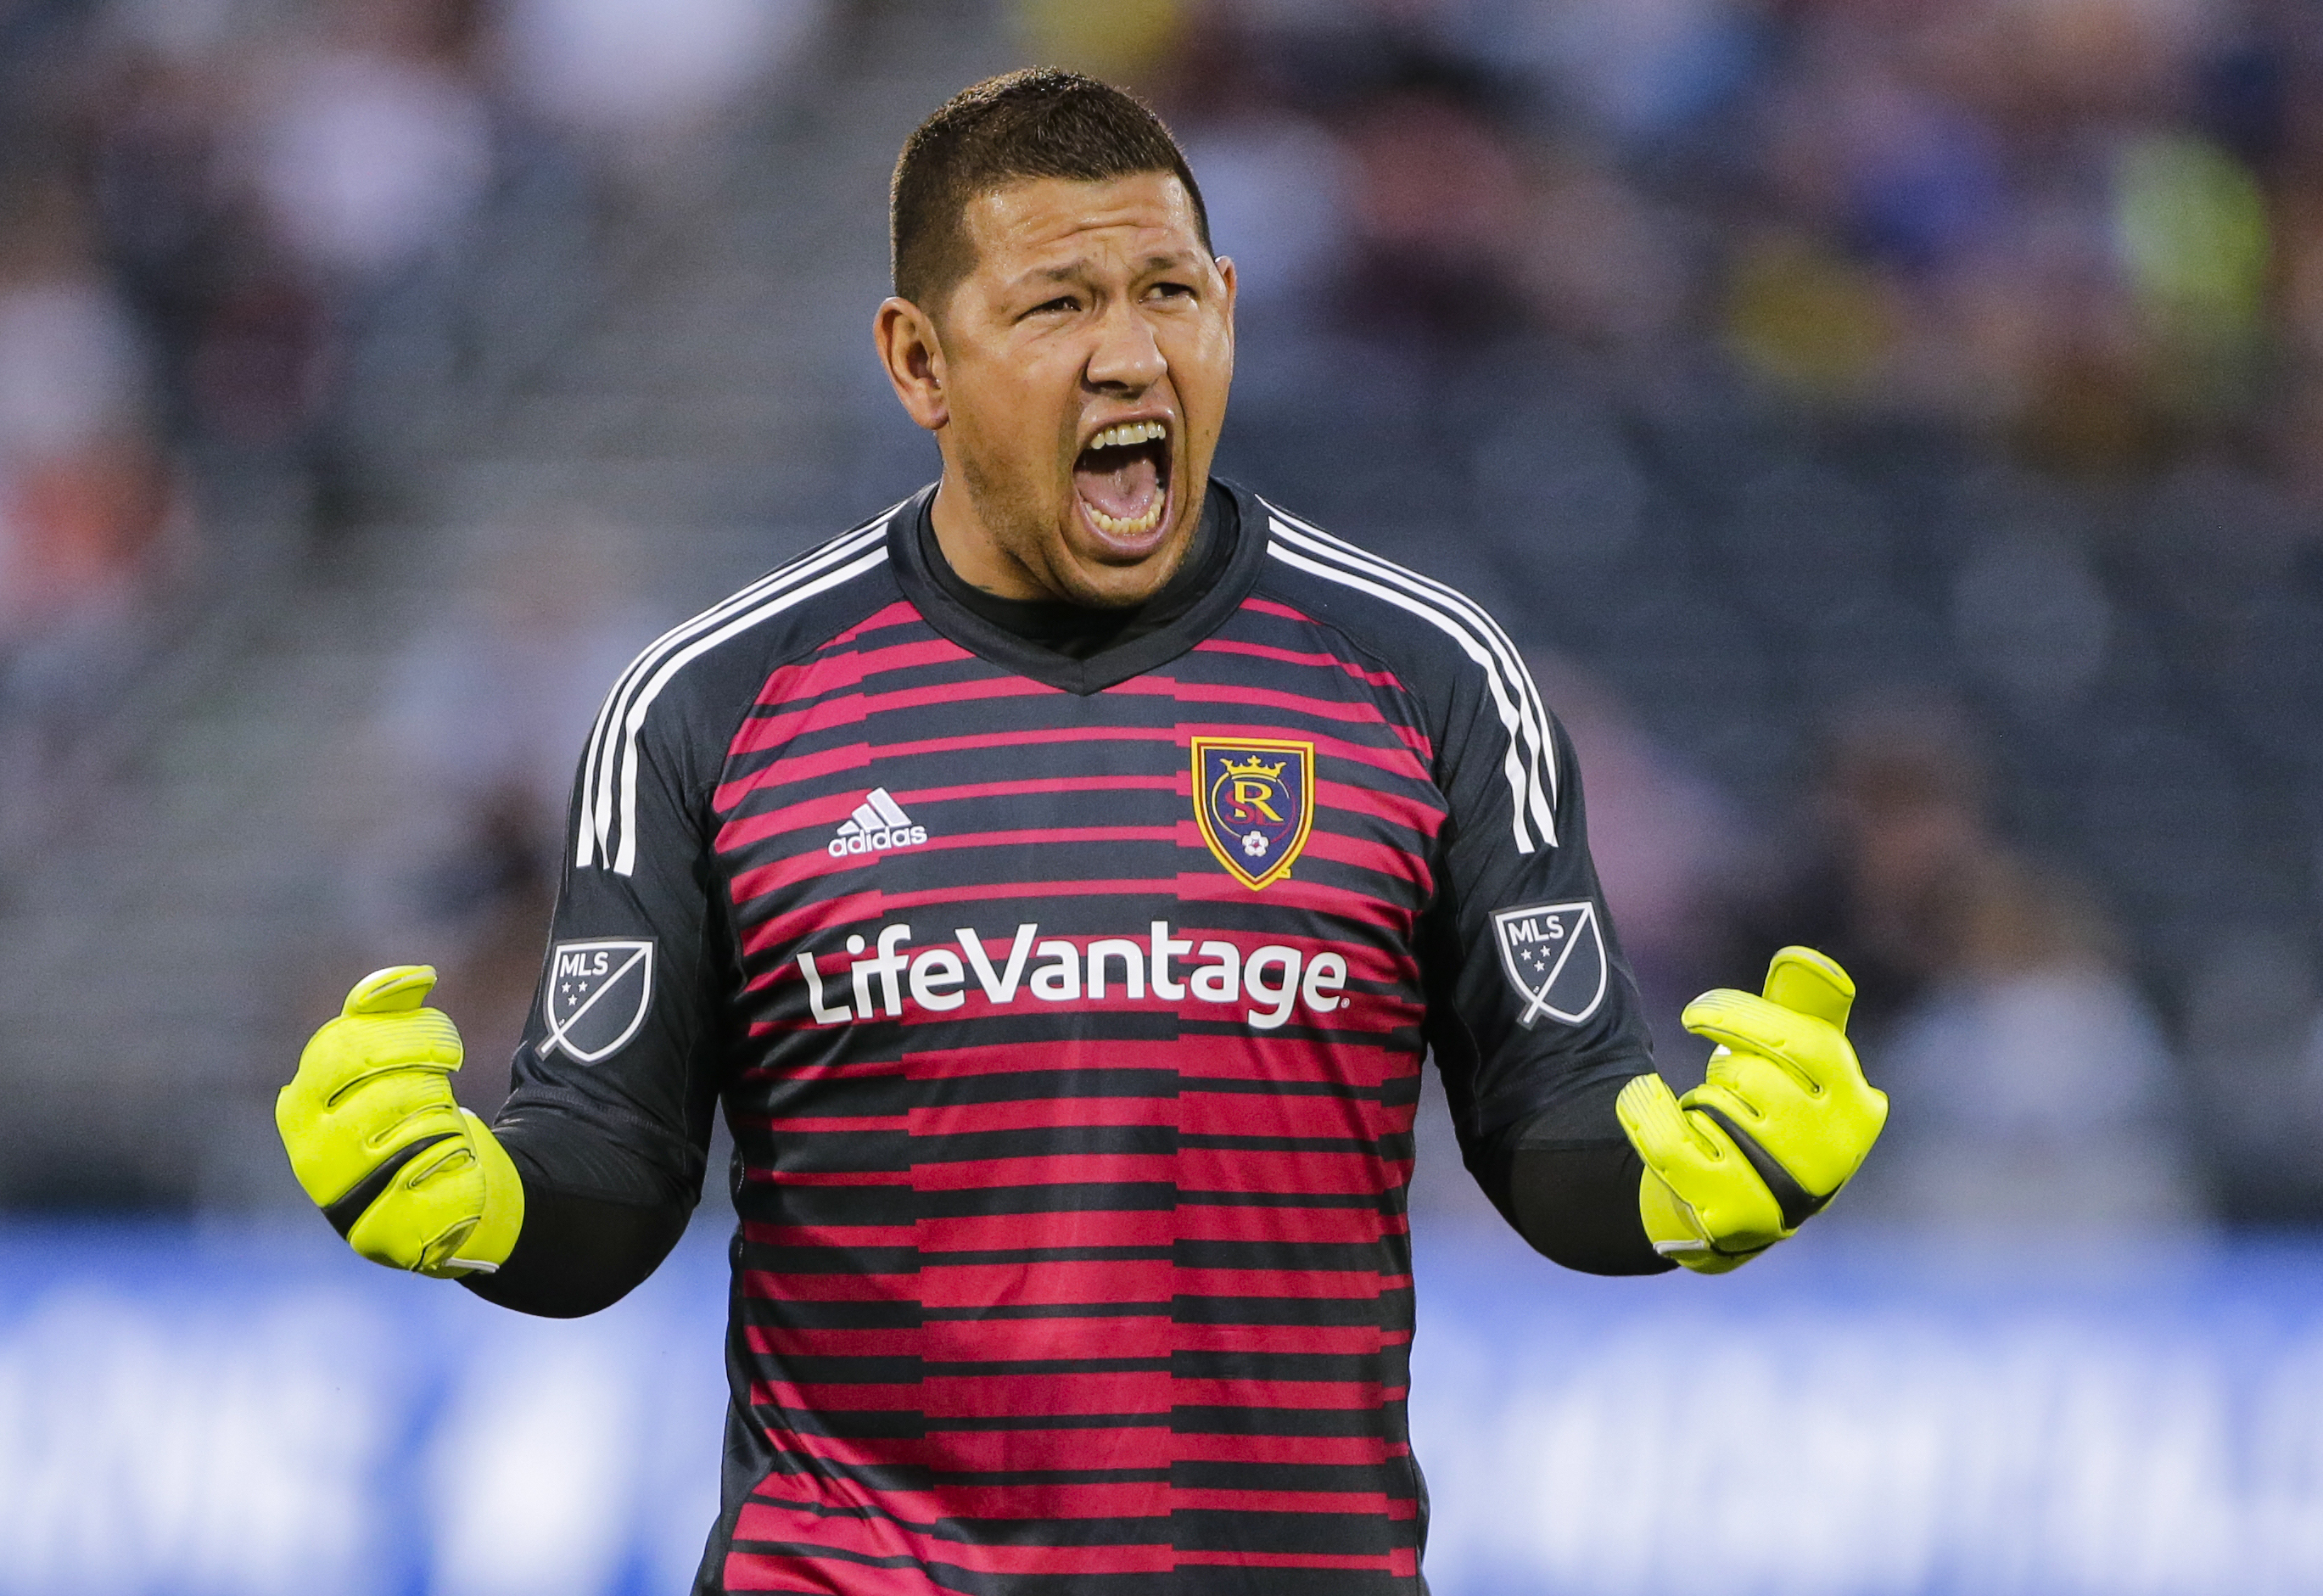 Real Salt Lake goalkeeper Nick Rimando celebrates his team's goal against the Colorado Rapids during the first half of an MLS soccer match, Saturday, Aug. 25, 2018, in Commerce City, Colo. (AP Photo/Jack Dempsey)